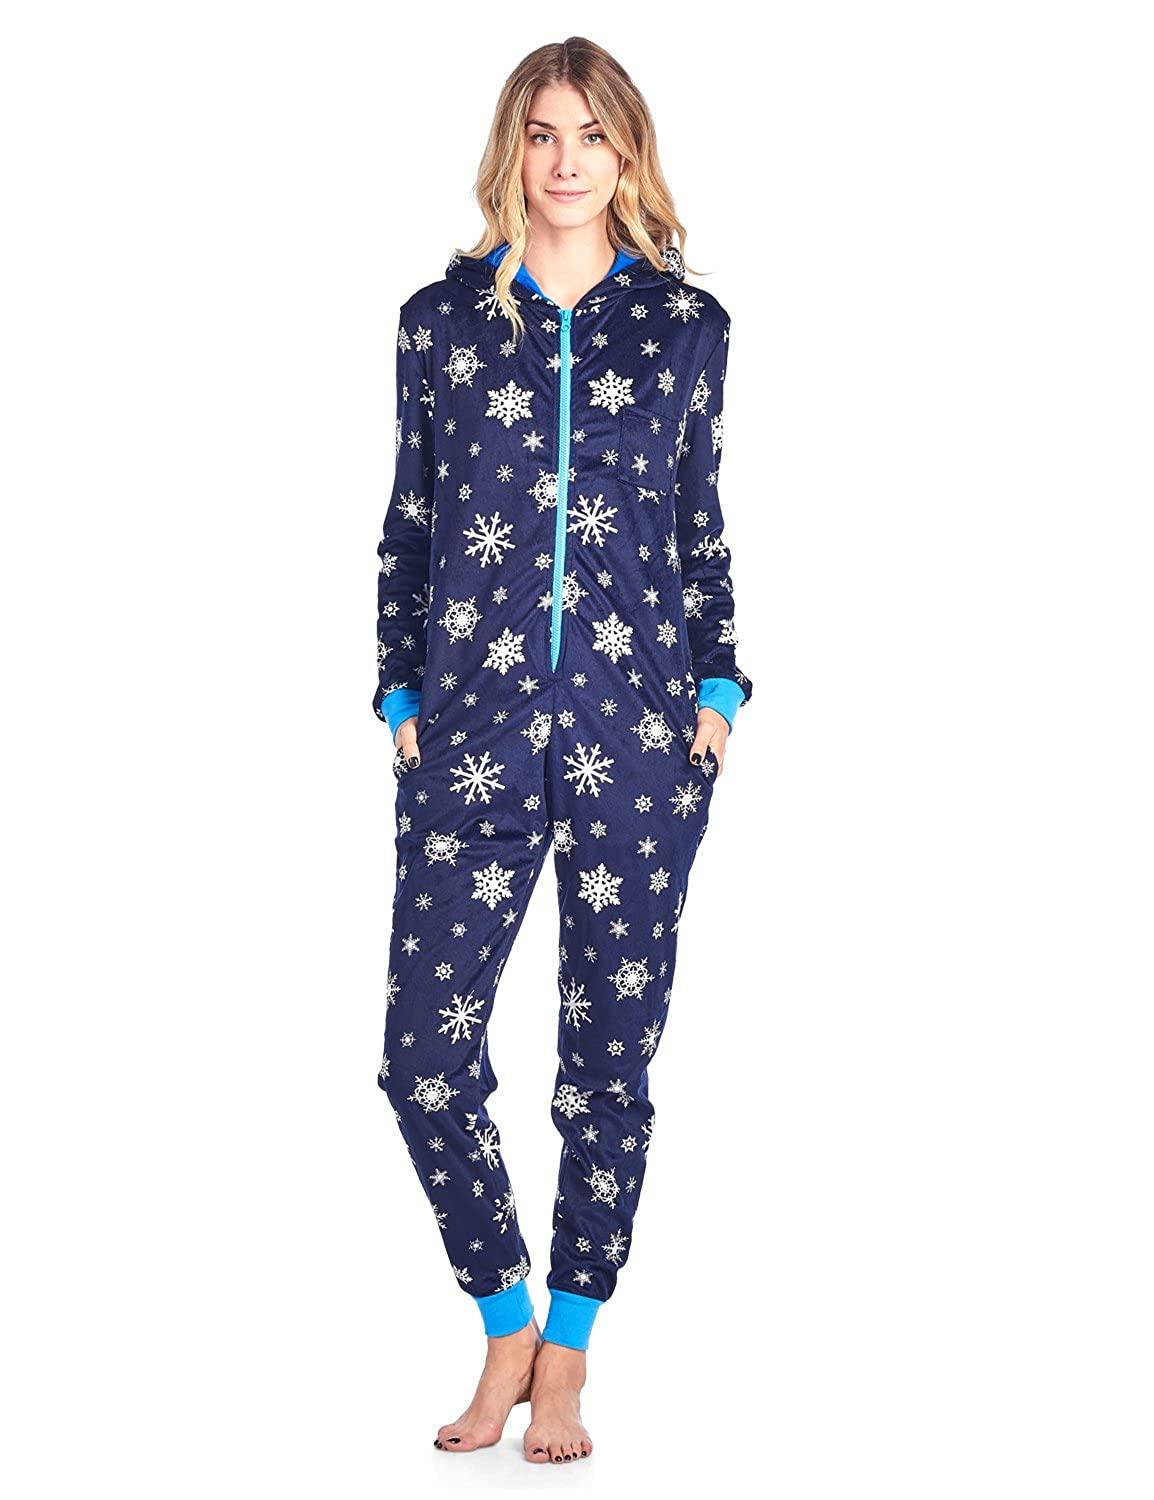 Ashford & Brooks Women's Fleece Hooded One Piece Pajama Union Jumpsuit ABW78554MFO